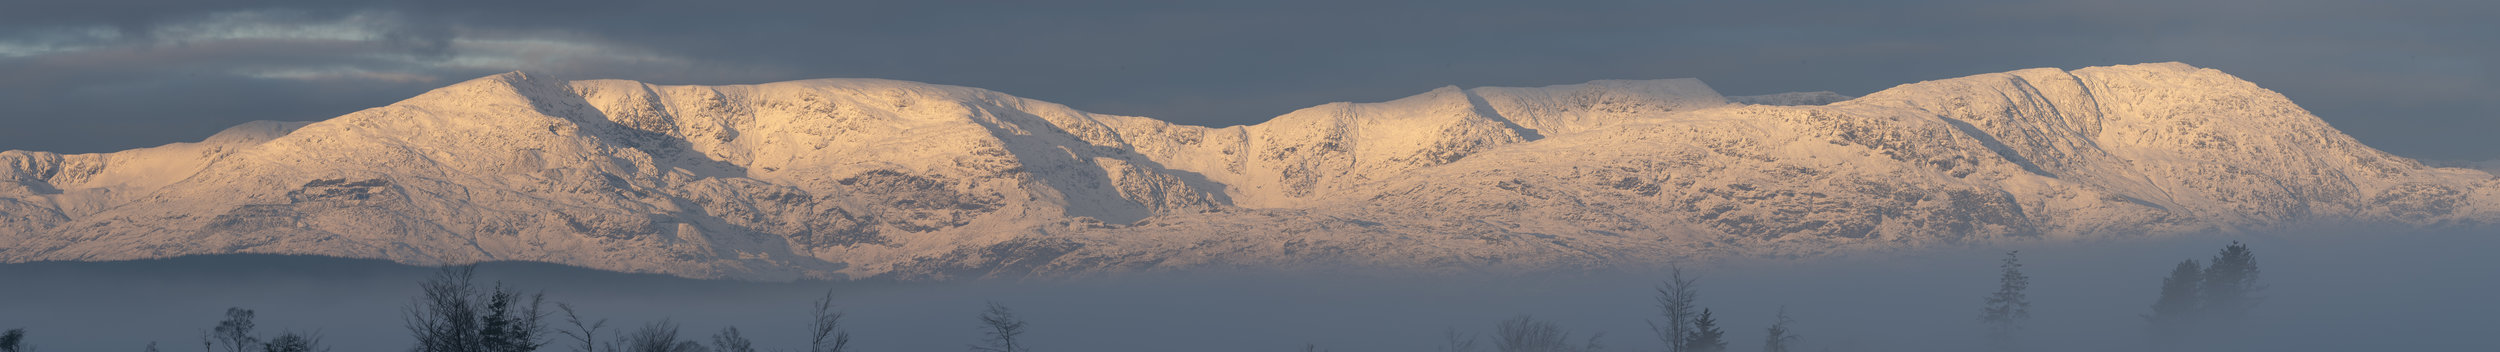 Mountains in the sky, 20th Jan 2019   f/13, 1/40 sec, 265mm (20 shot stitched panorama)   All of the Coniston and Langdale Mountains lit up at sunrise on the morning of 20th Jan, 2019. The cloud was lying low so the mountains were often isolated in their sky islands. A lot of shots to process, as you might imagine, but thought I'd start with this 20 shot panorama taken at 265mm. The source file of this one is 32086 x 6224 pixels, so I'm planning a 4+ metre print of this… 😁!!